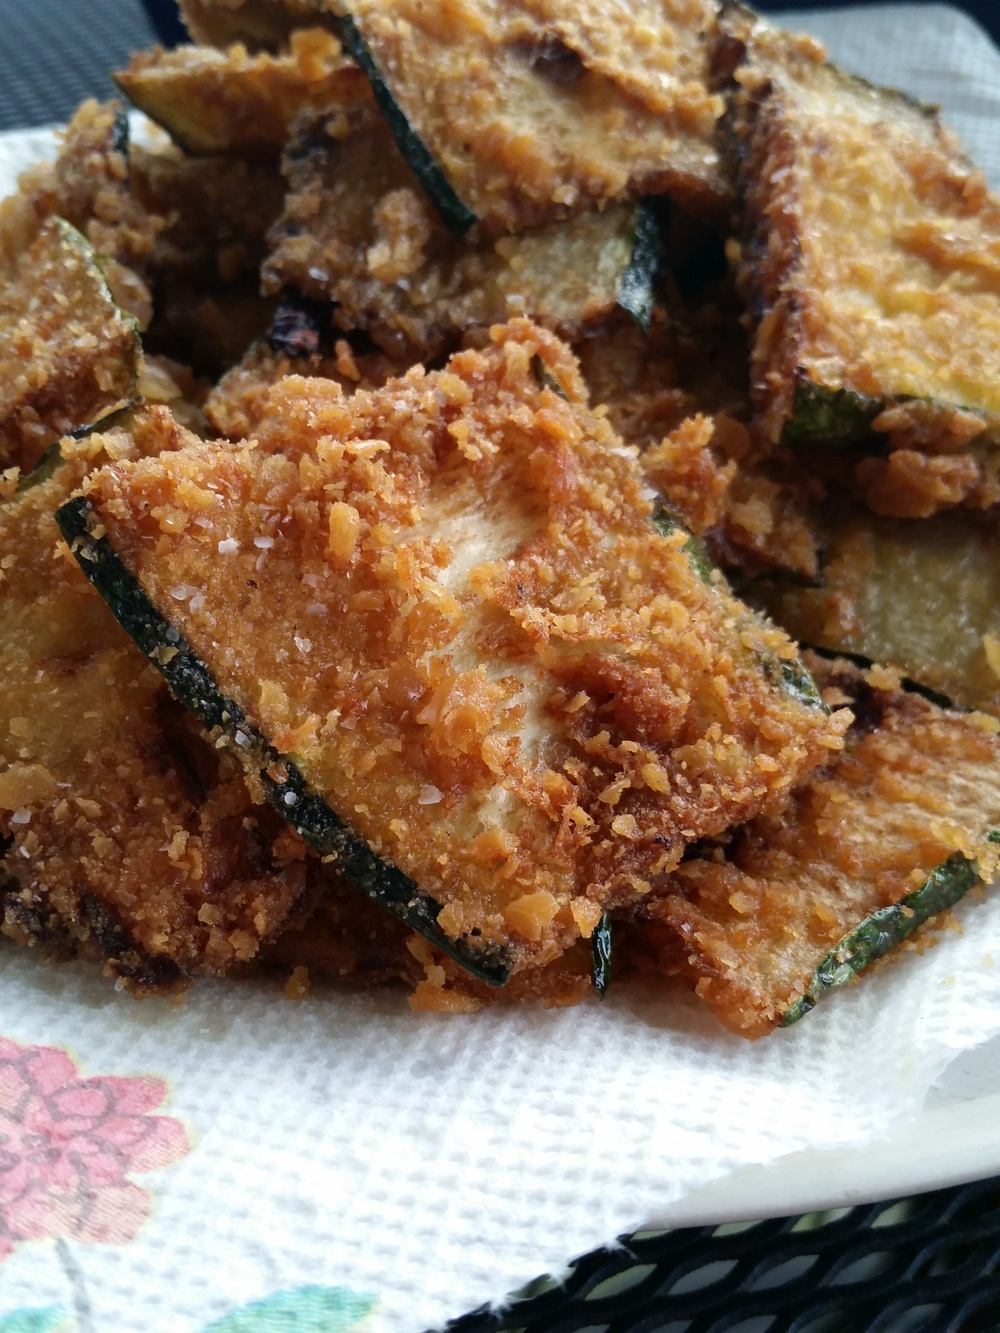 Fried Zucchini is a family favorite